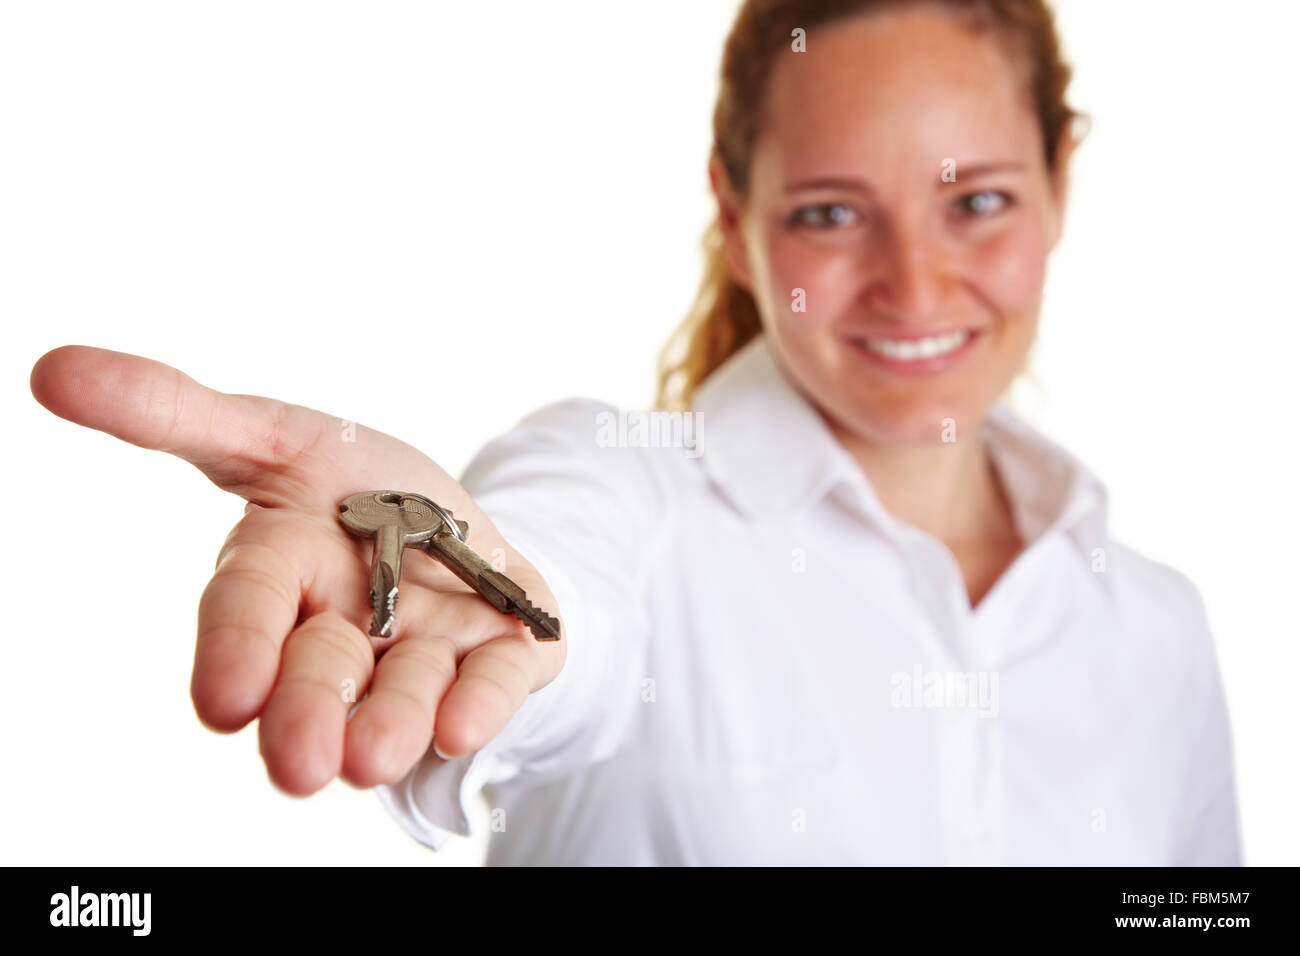 Business woman offering two keys on her open palm - Stock Image